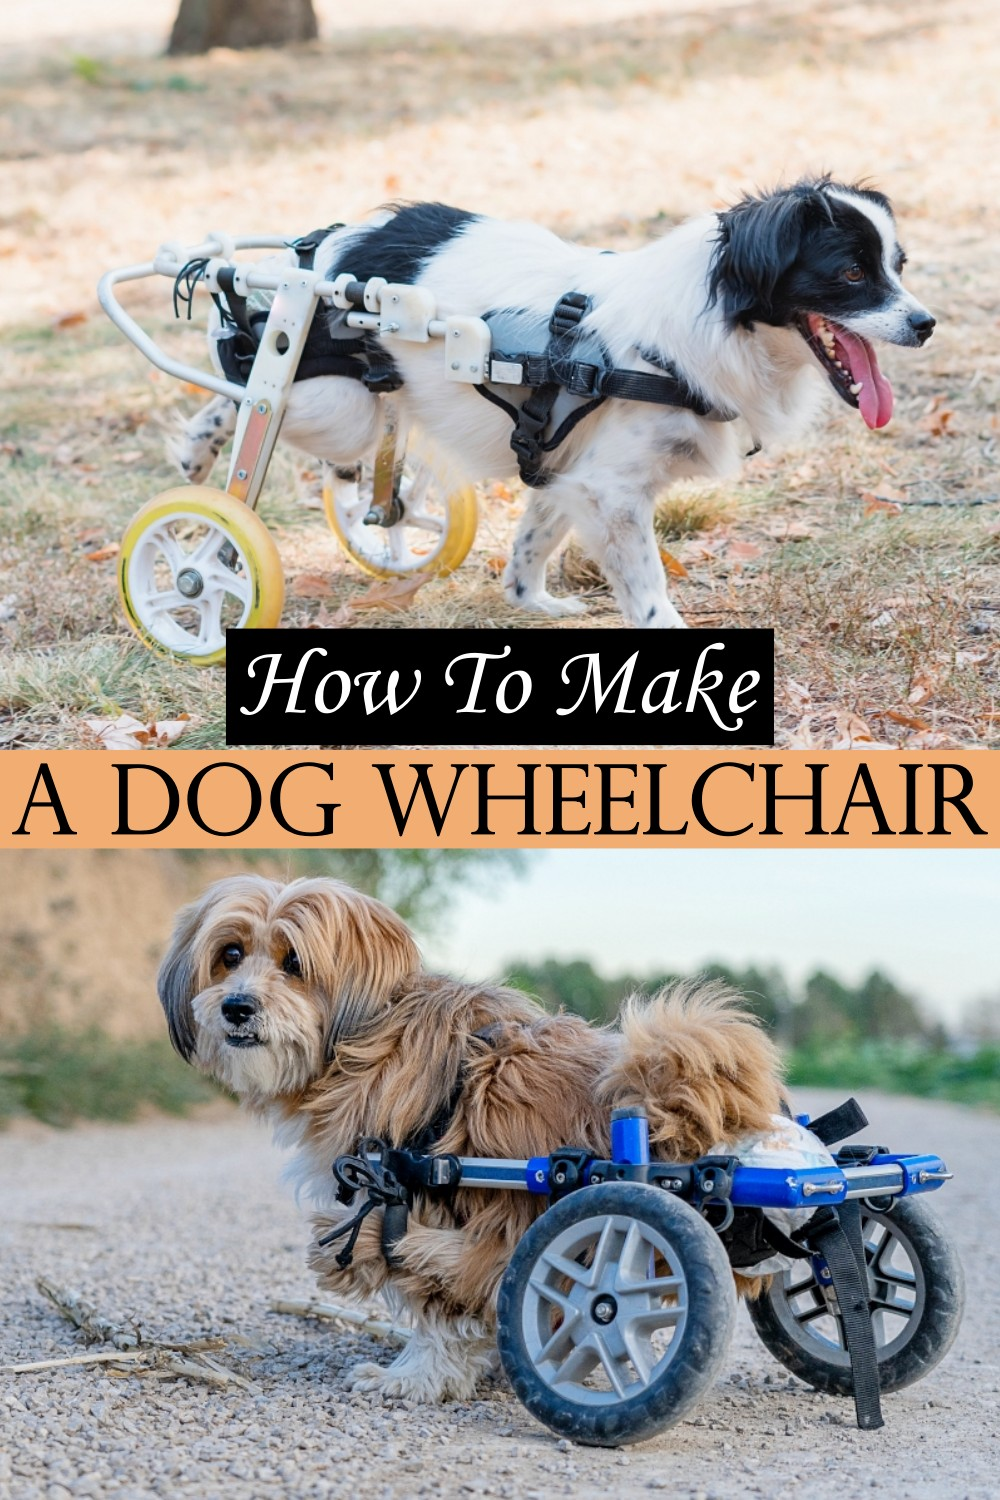 How To Make A Dog Wheelchair